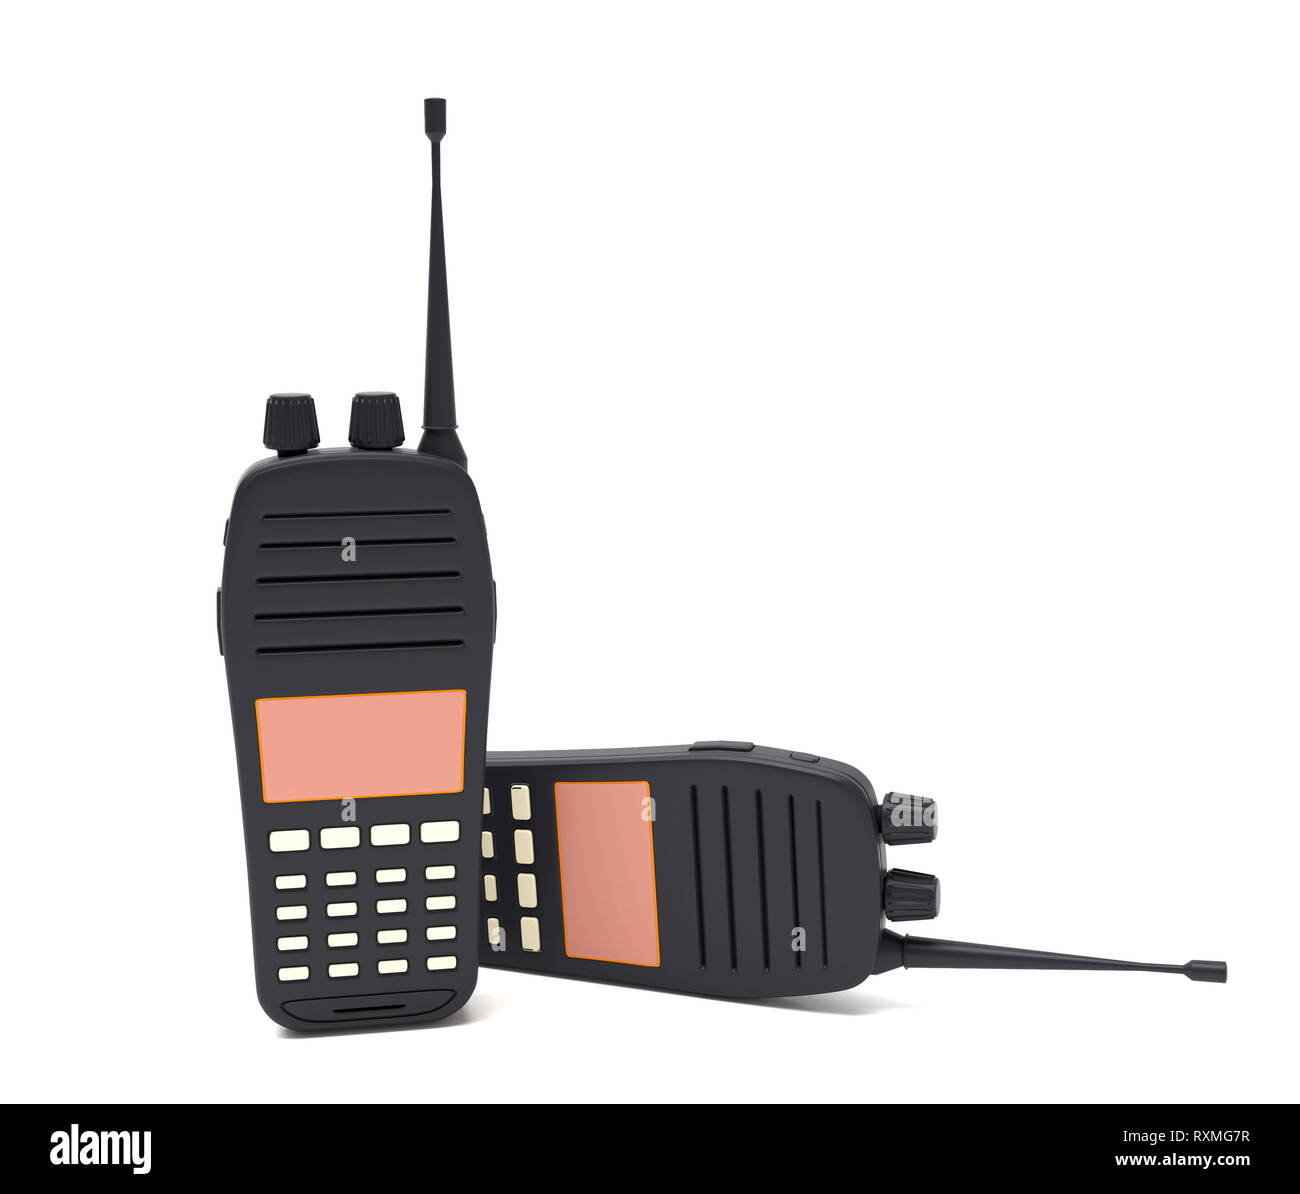 Two radio transceivers. 3d rendering illustration Stock Photo